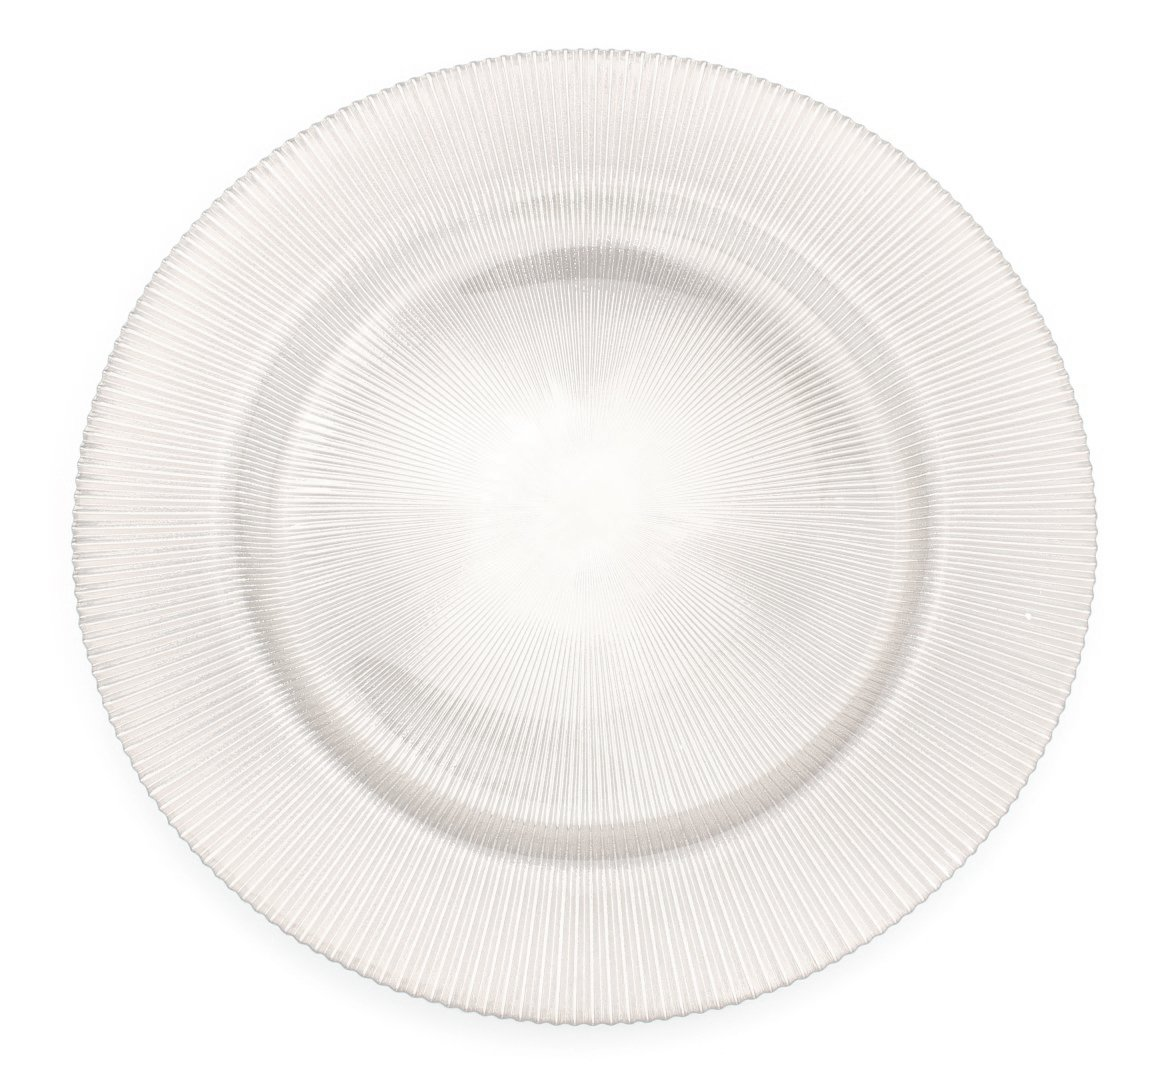 Glass Charger 13 Inch Dinner Plate With Etched Design and Metallic Tones - Set of 4 - Pearl